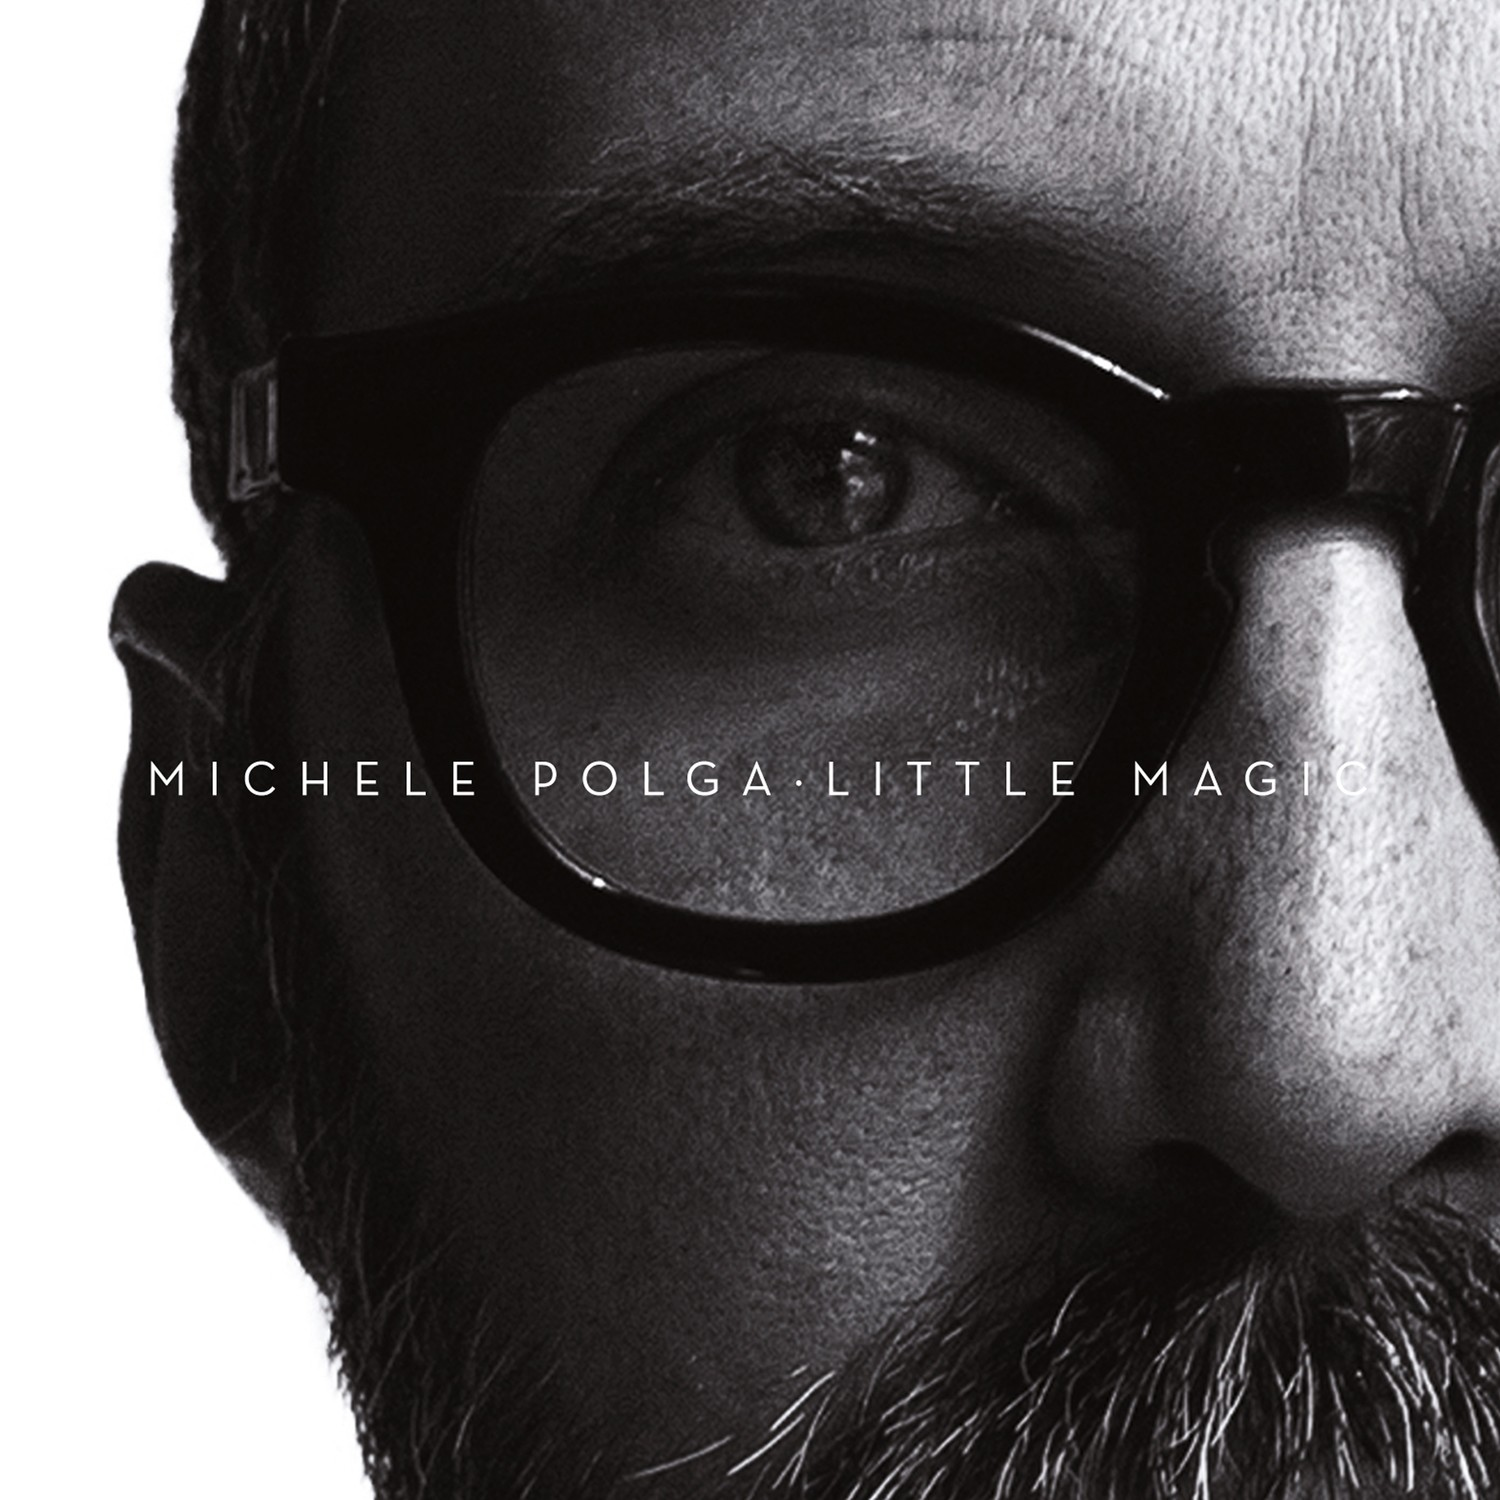 MICHELE POLGA  «Little magic»